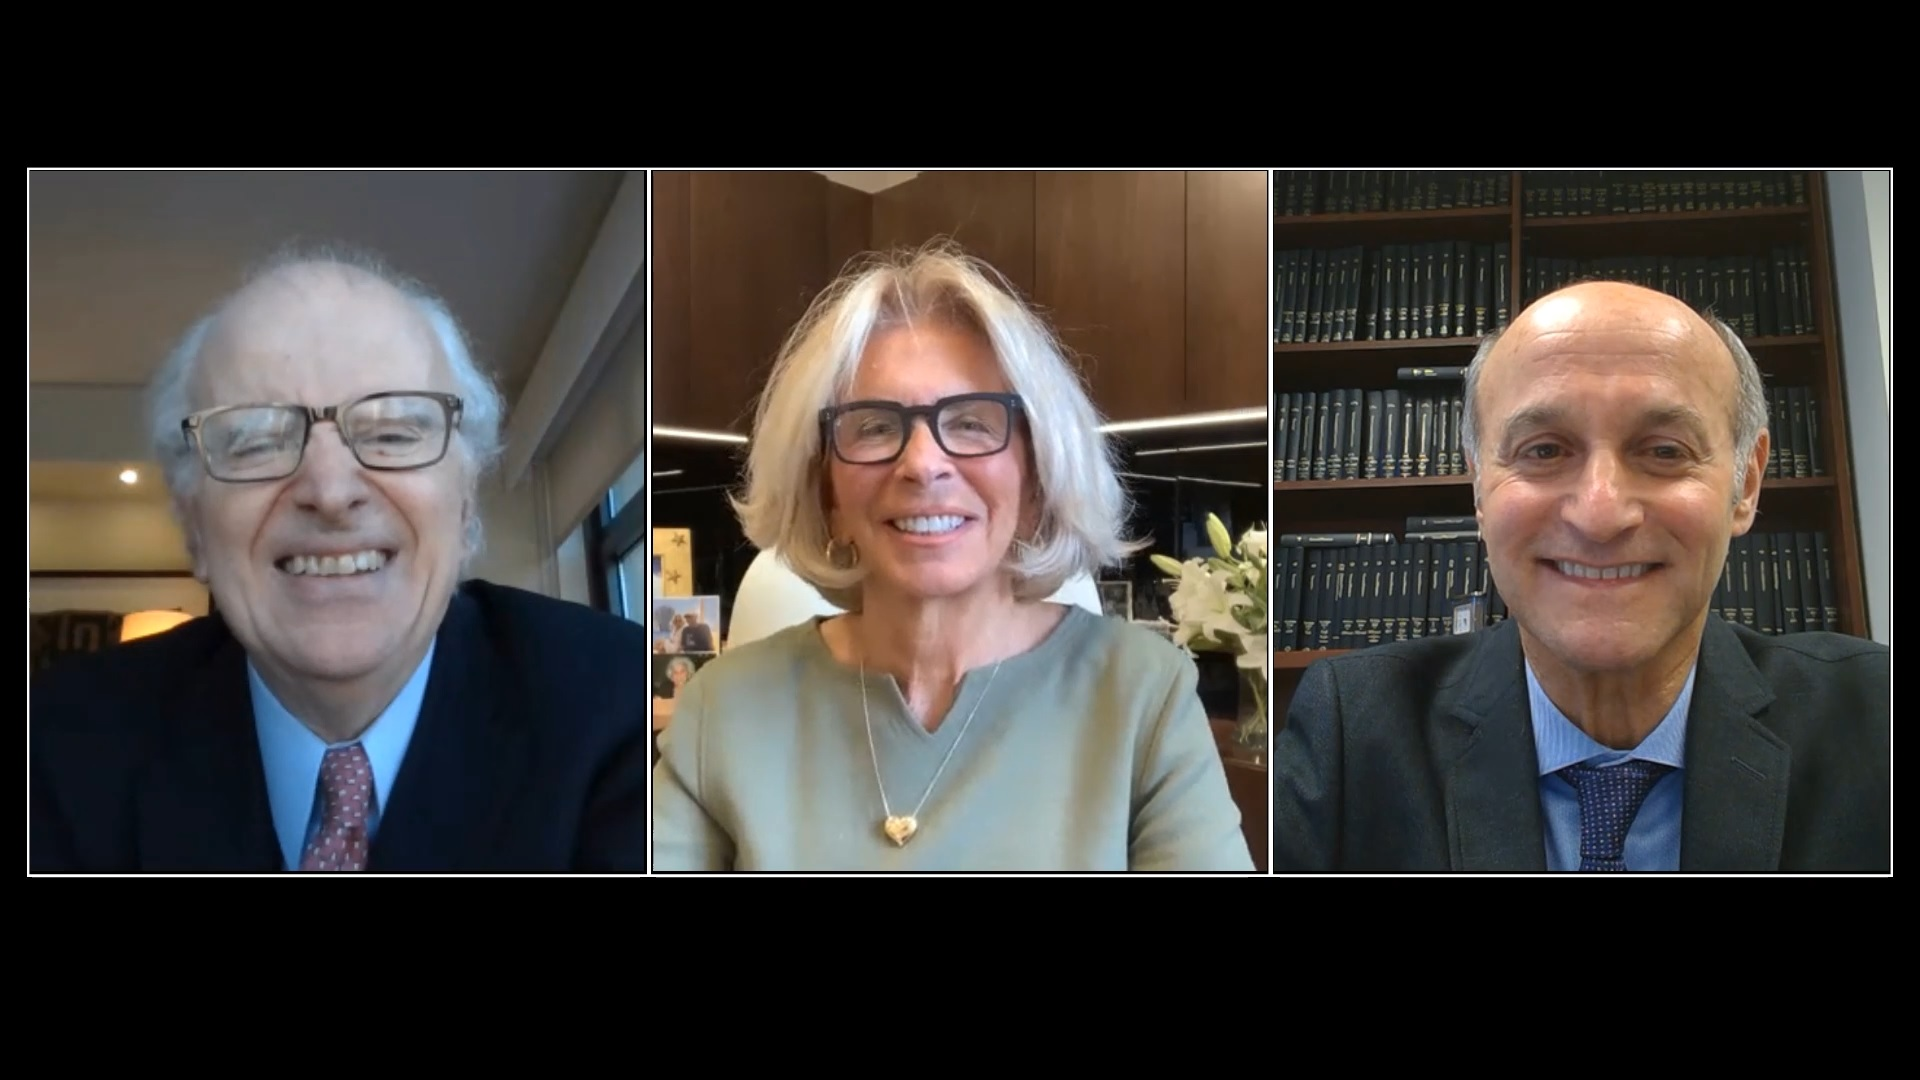 Former Chief Judge Jonathan Lippman, Chief Judge Janet DiFiore, and Chief Administrative Judge Lawrence K. Marks